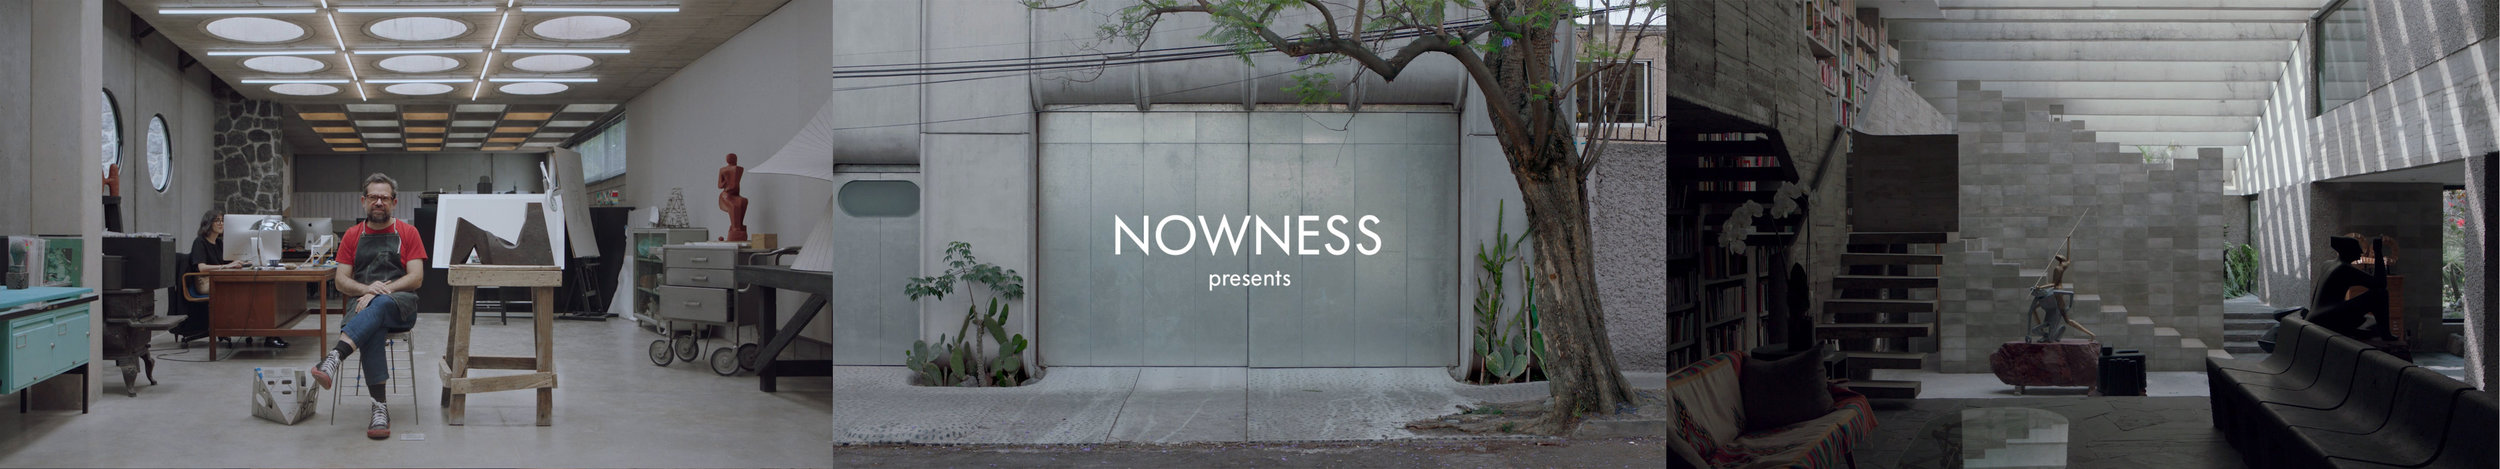 Short Film  Nowness: In Residence w/ Pedro Reyes and Carla Fernandez